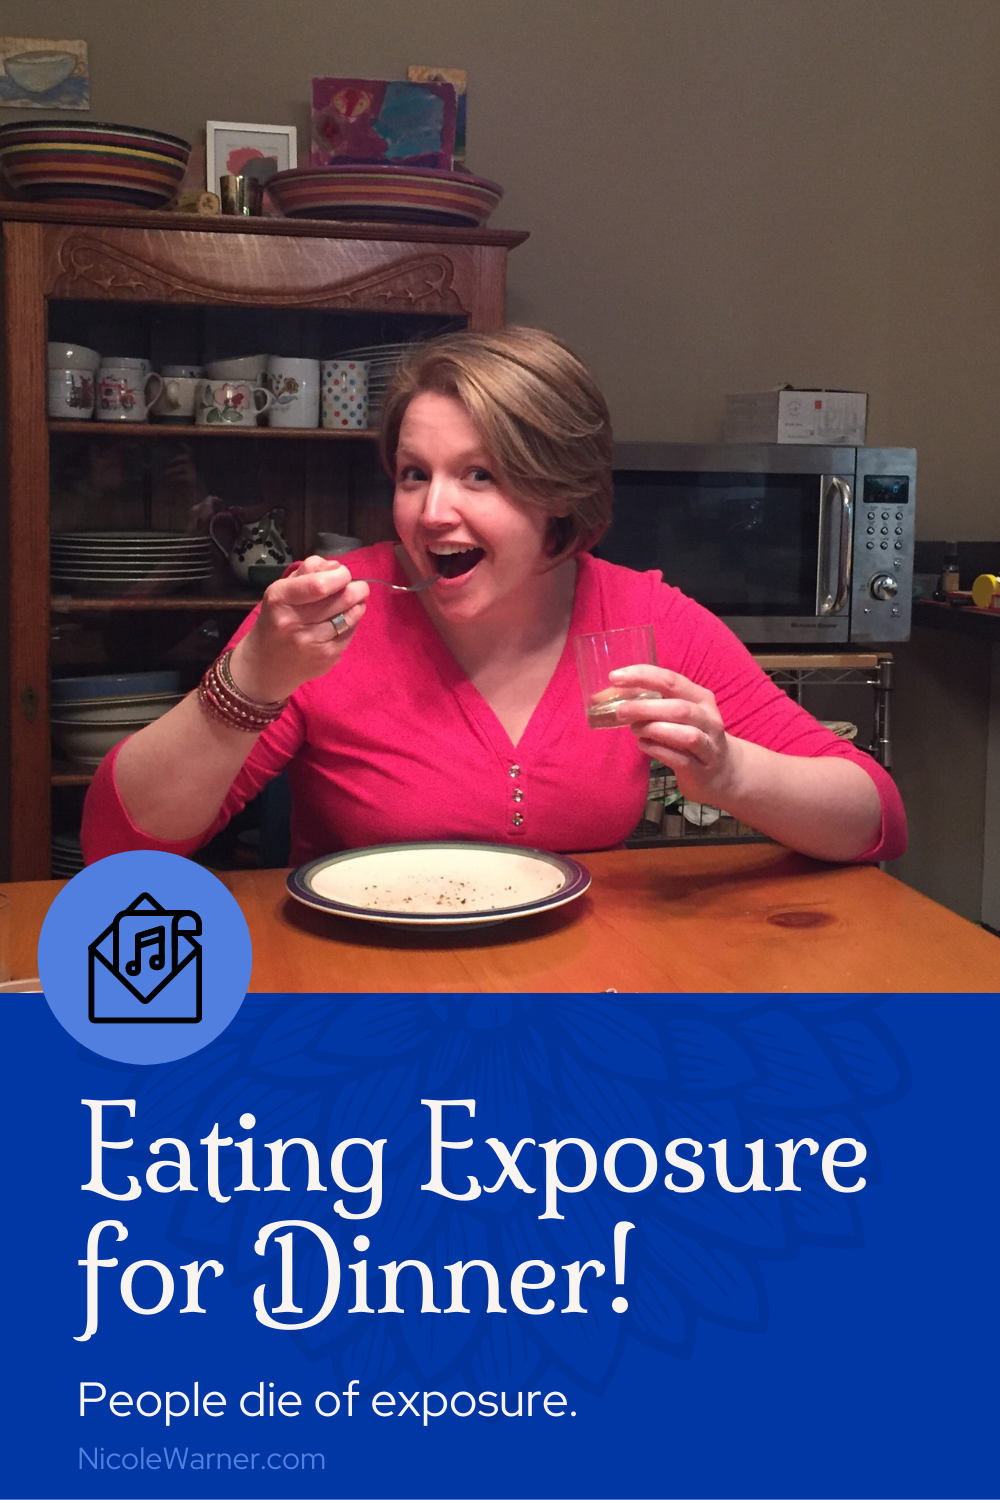 Eating Exposure for Dinner_Nicole Warner mezzo-soprano